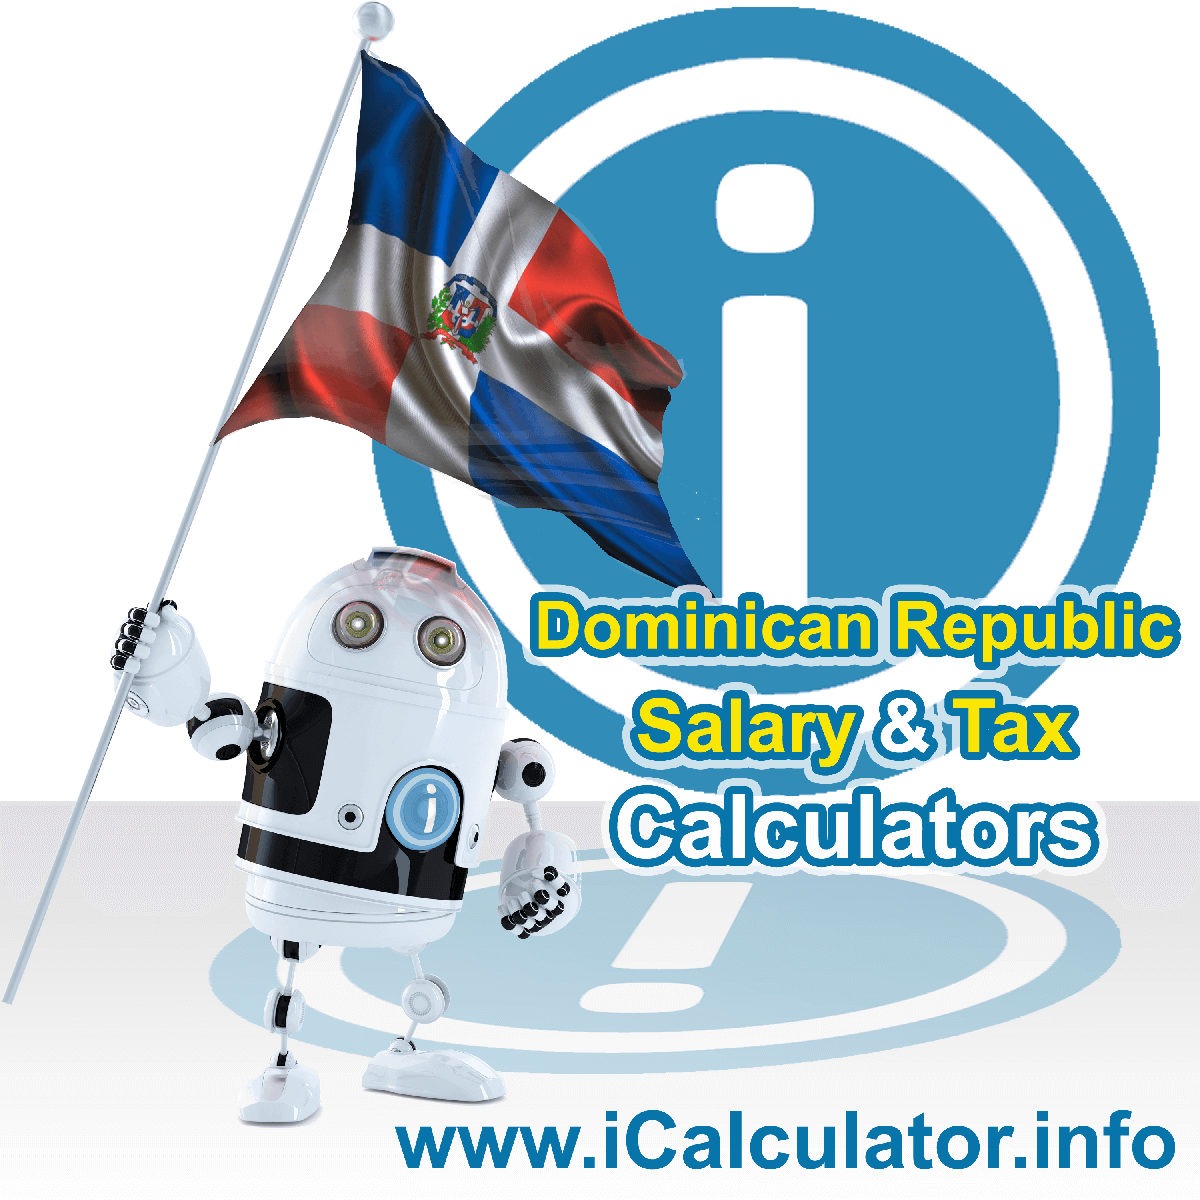 Dominican Republic Wage Calculator. This image shows the Dominican Republic flag and information relating to the tax formula for the Dominican Republic Tax Calculator